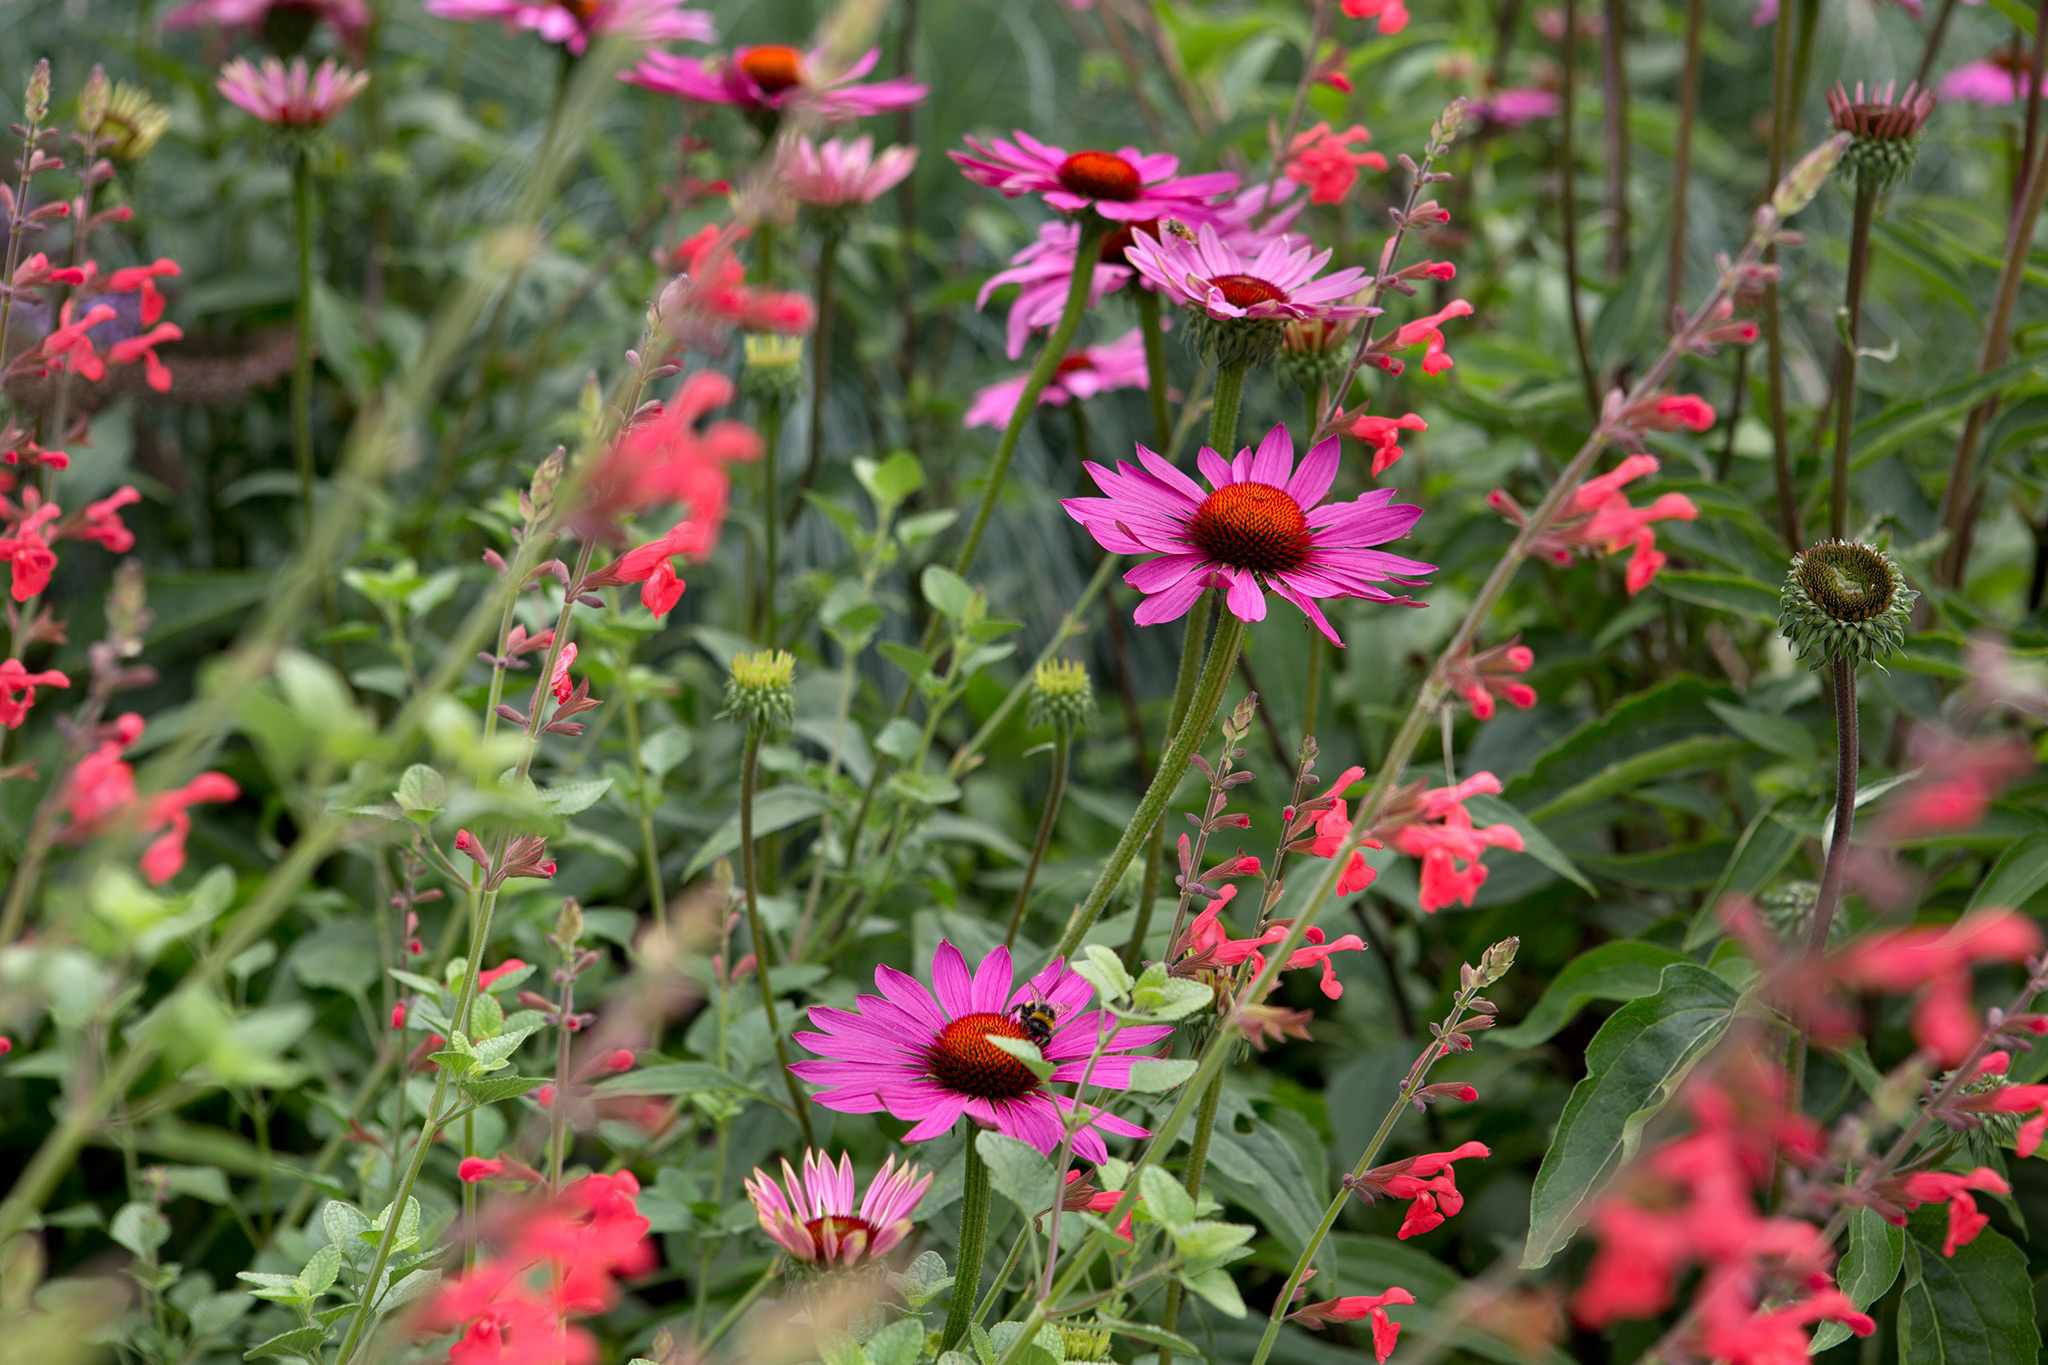 Echinacea and salvia